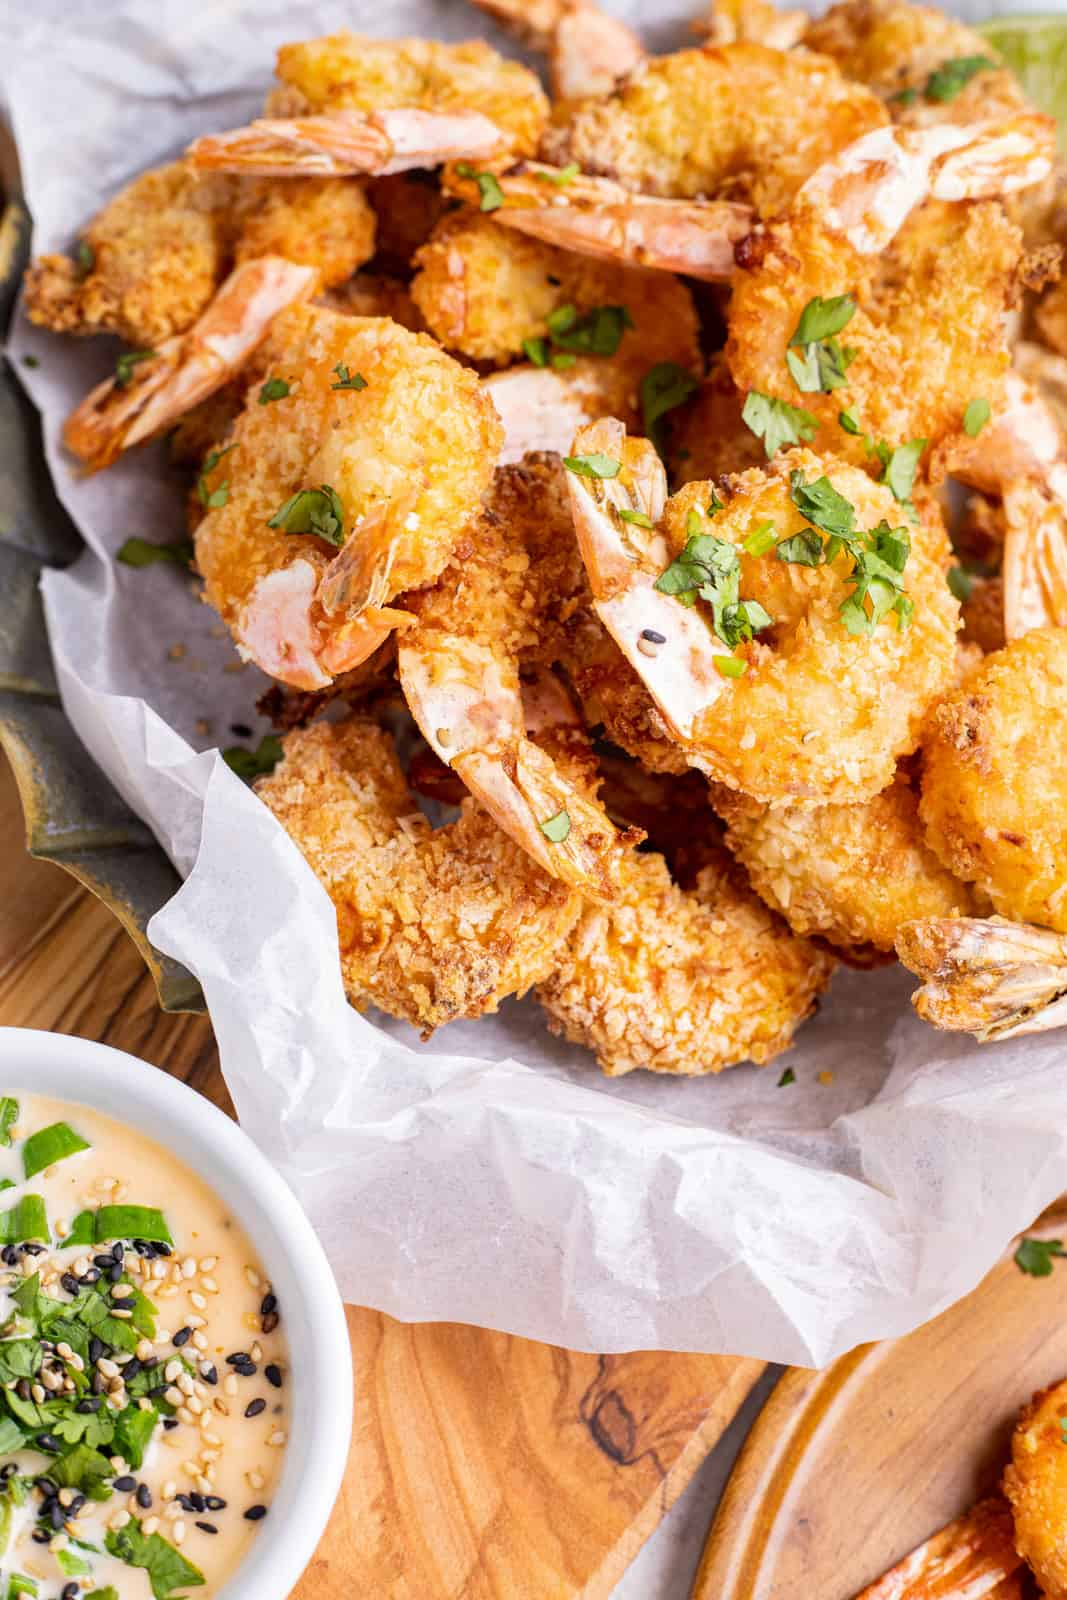 Overhead photo of shrimp in basket with dipping sauce on side